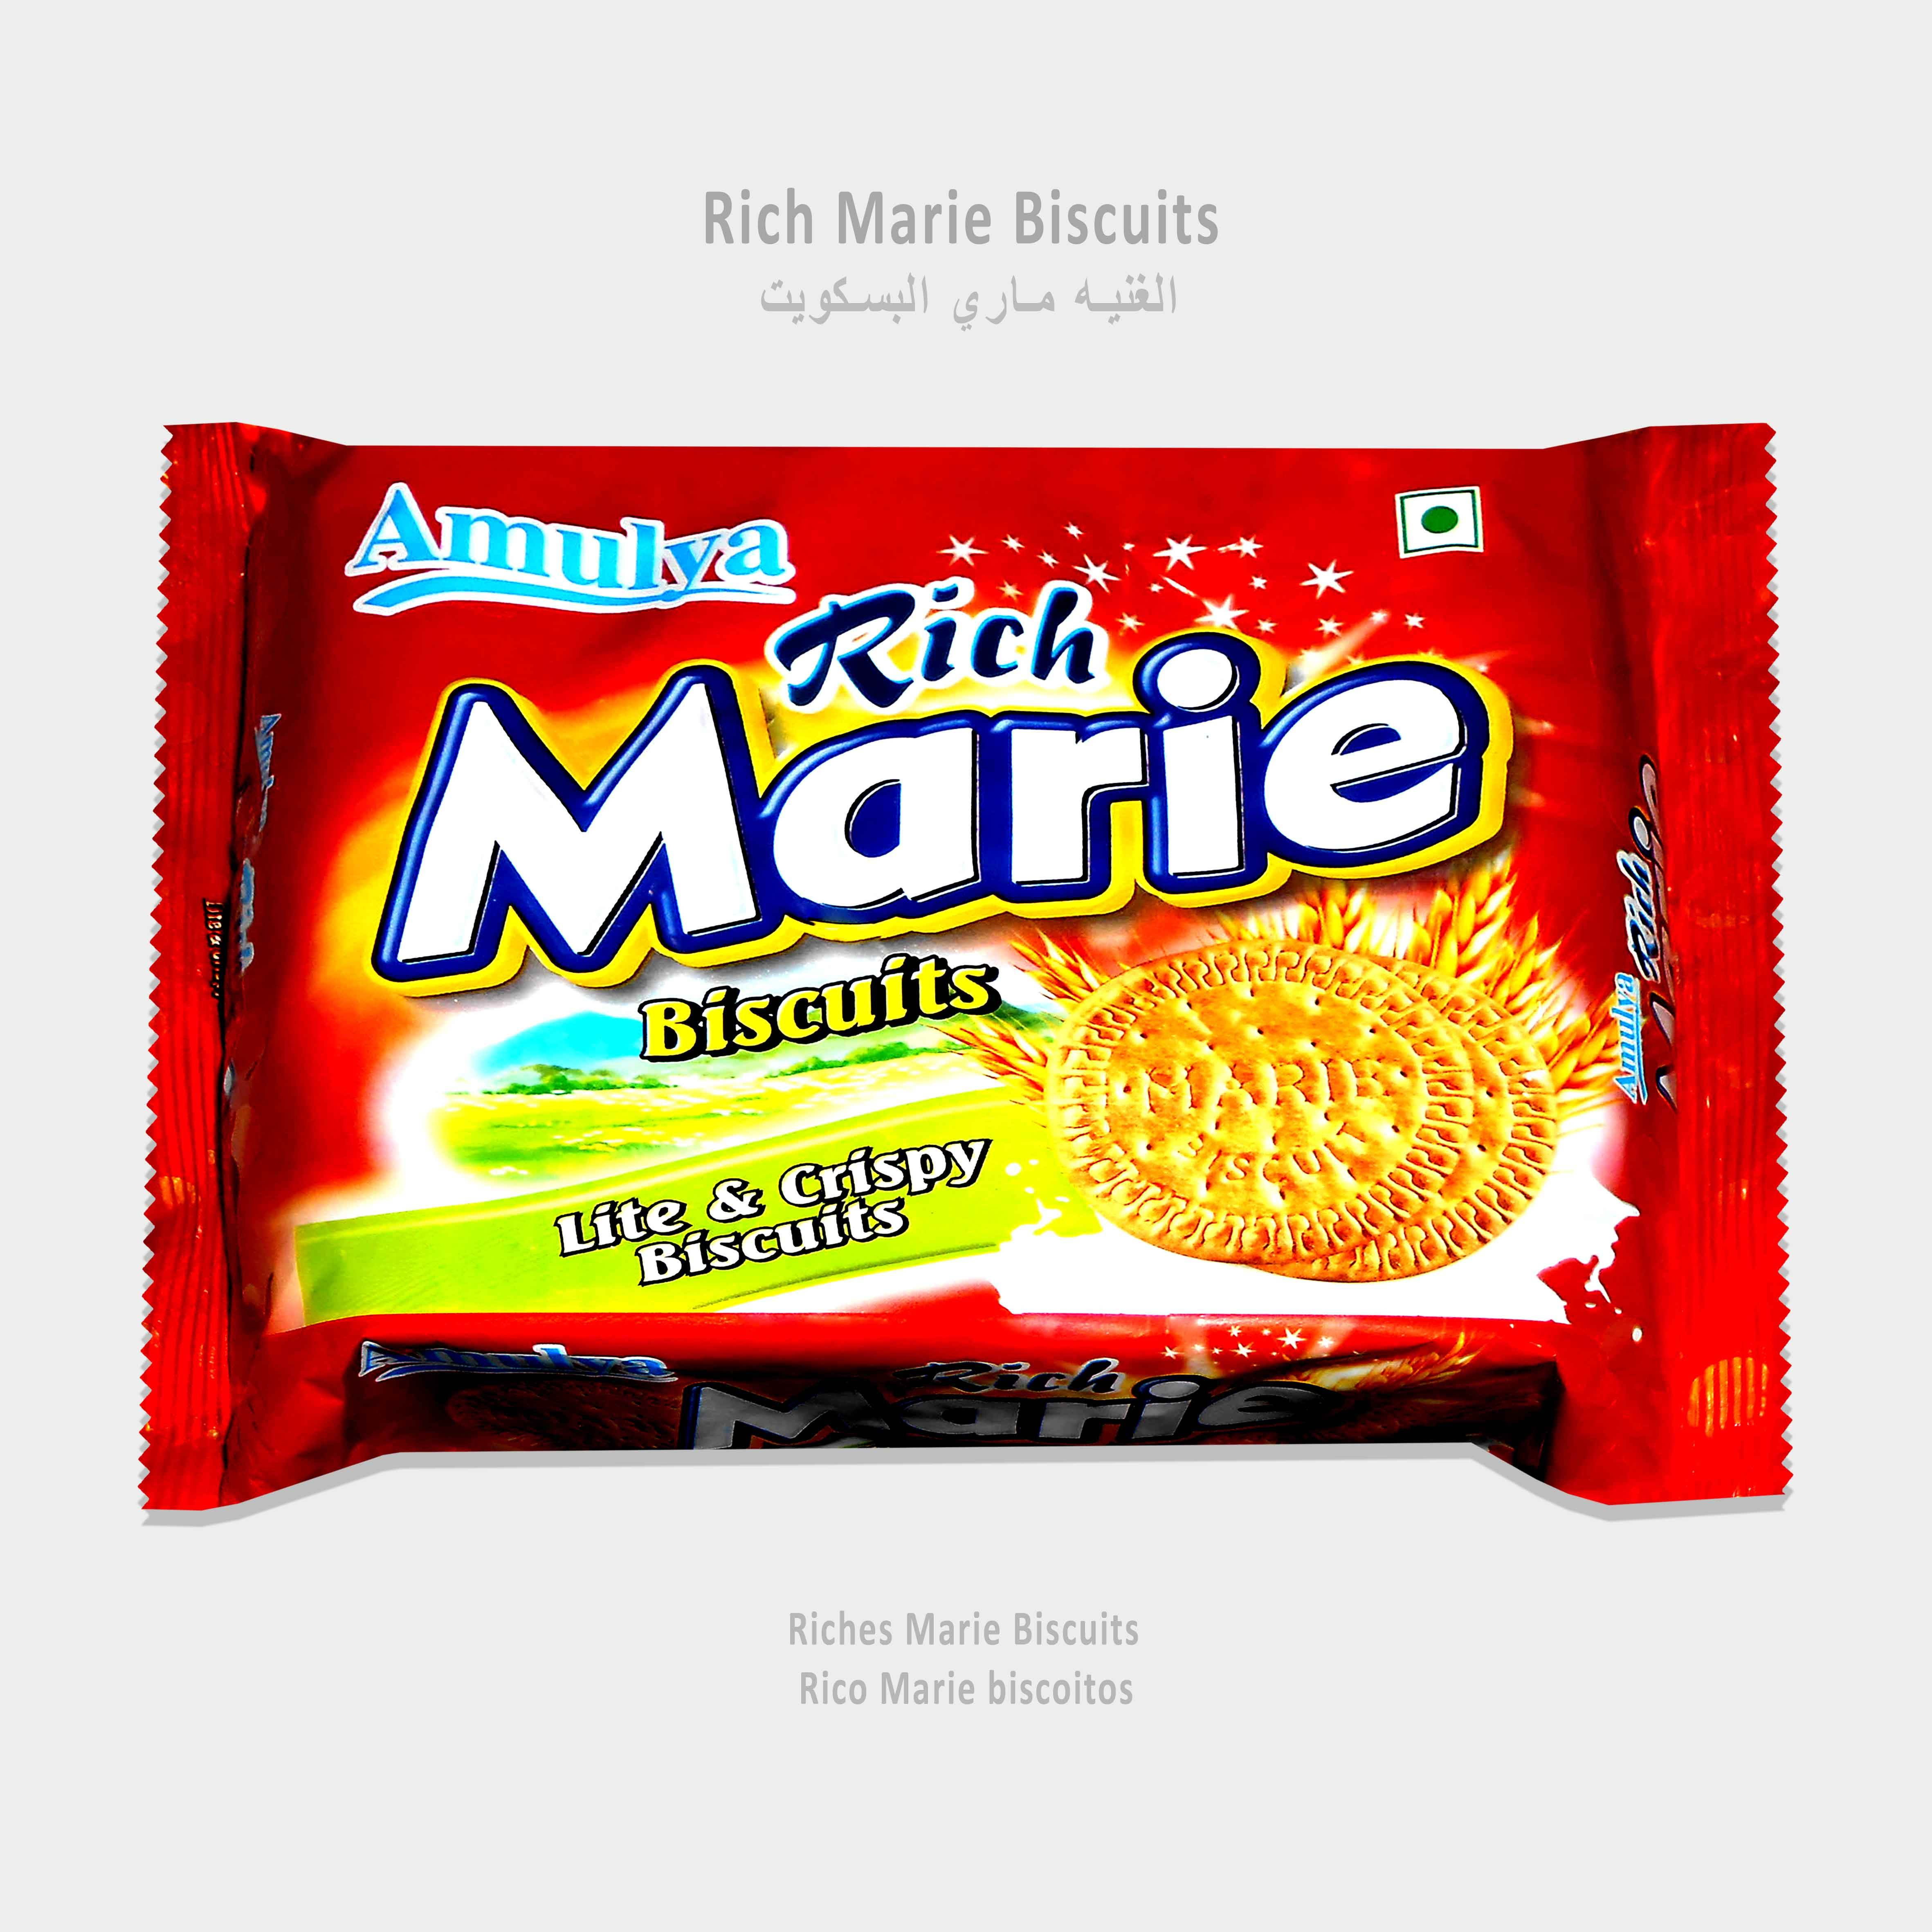 Marie biscuits 350g Family Pack Maria Crisp n Tasty Tea Biscuit Dorada Milky Biscottti Manufacturer Fine Quality Low Price Cheap